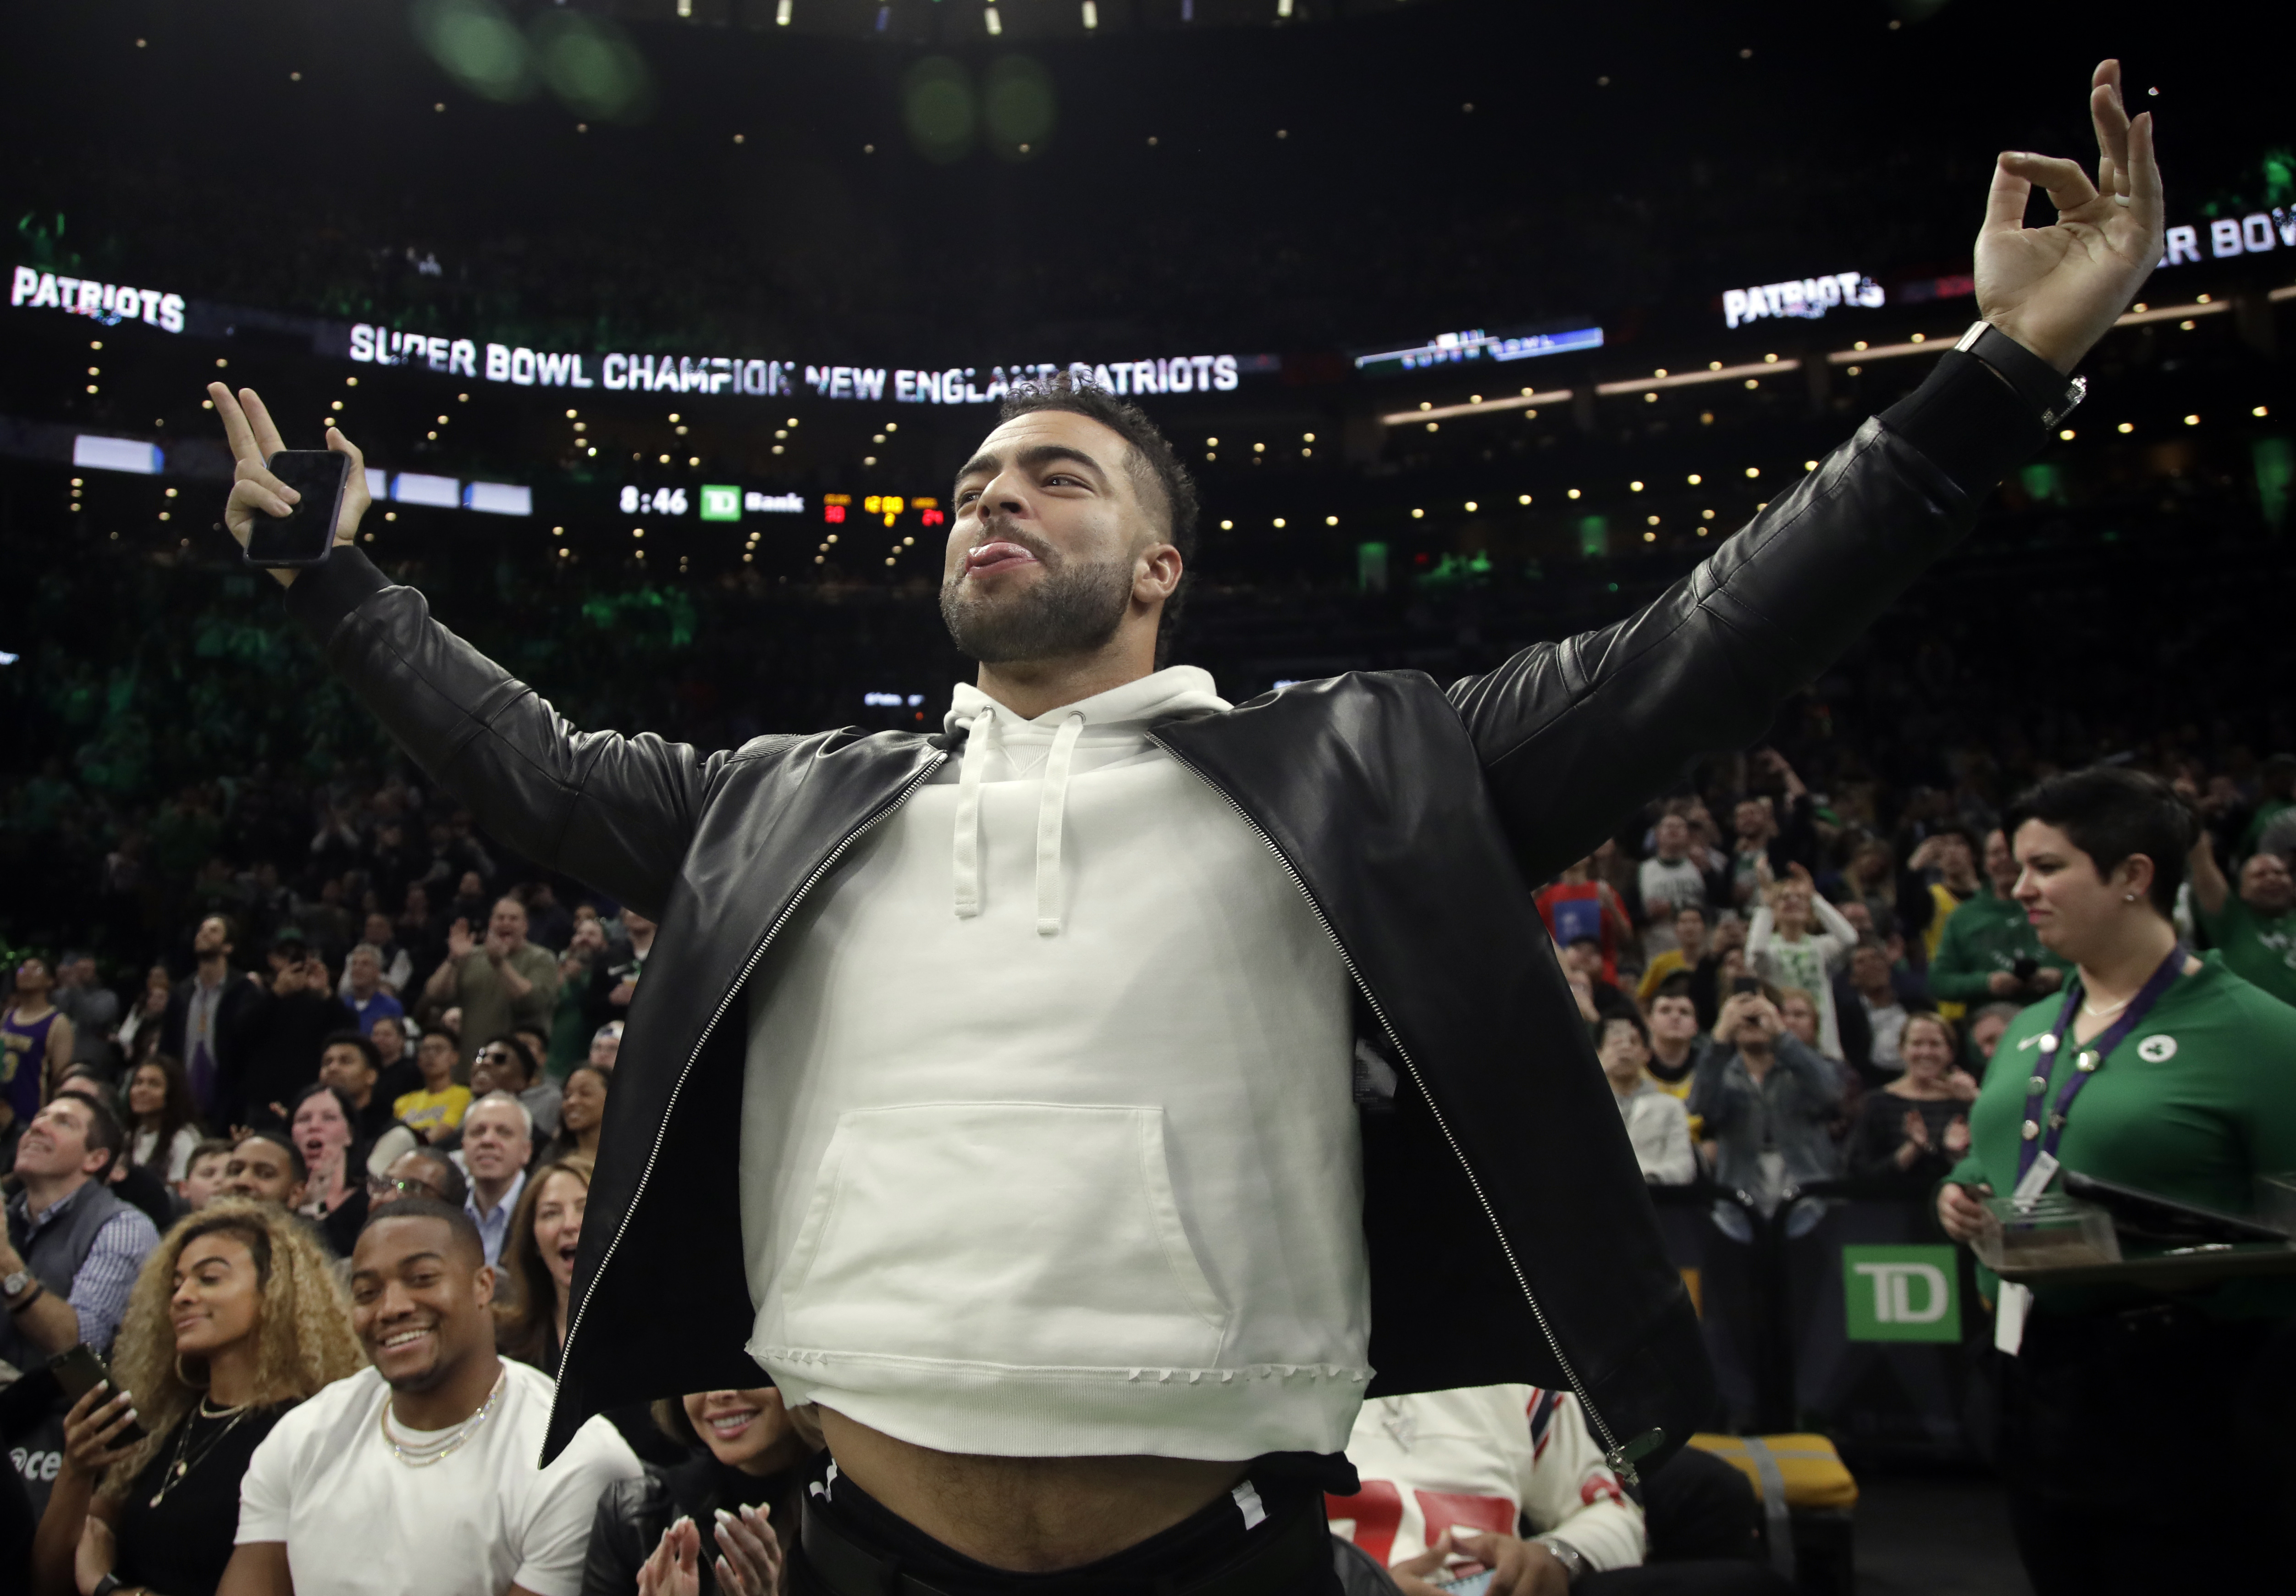 (AP Photo/Elise Amendola) New England Patriots football player Kyle Van Noy acknowledges the fans as the Patriots' Super Bowl victory is honored during a break in an NBA basketball game between the Boston Celtics and the Los Angeles Lakers, Thursday, Feb. 7, 2019, in Boston.